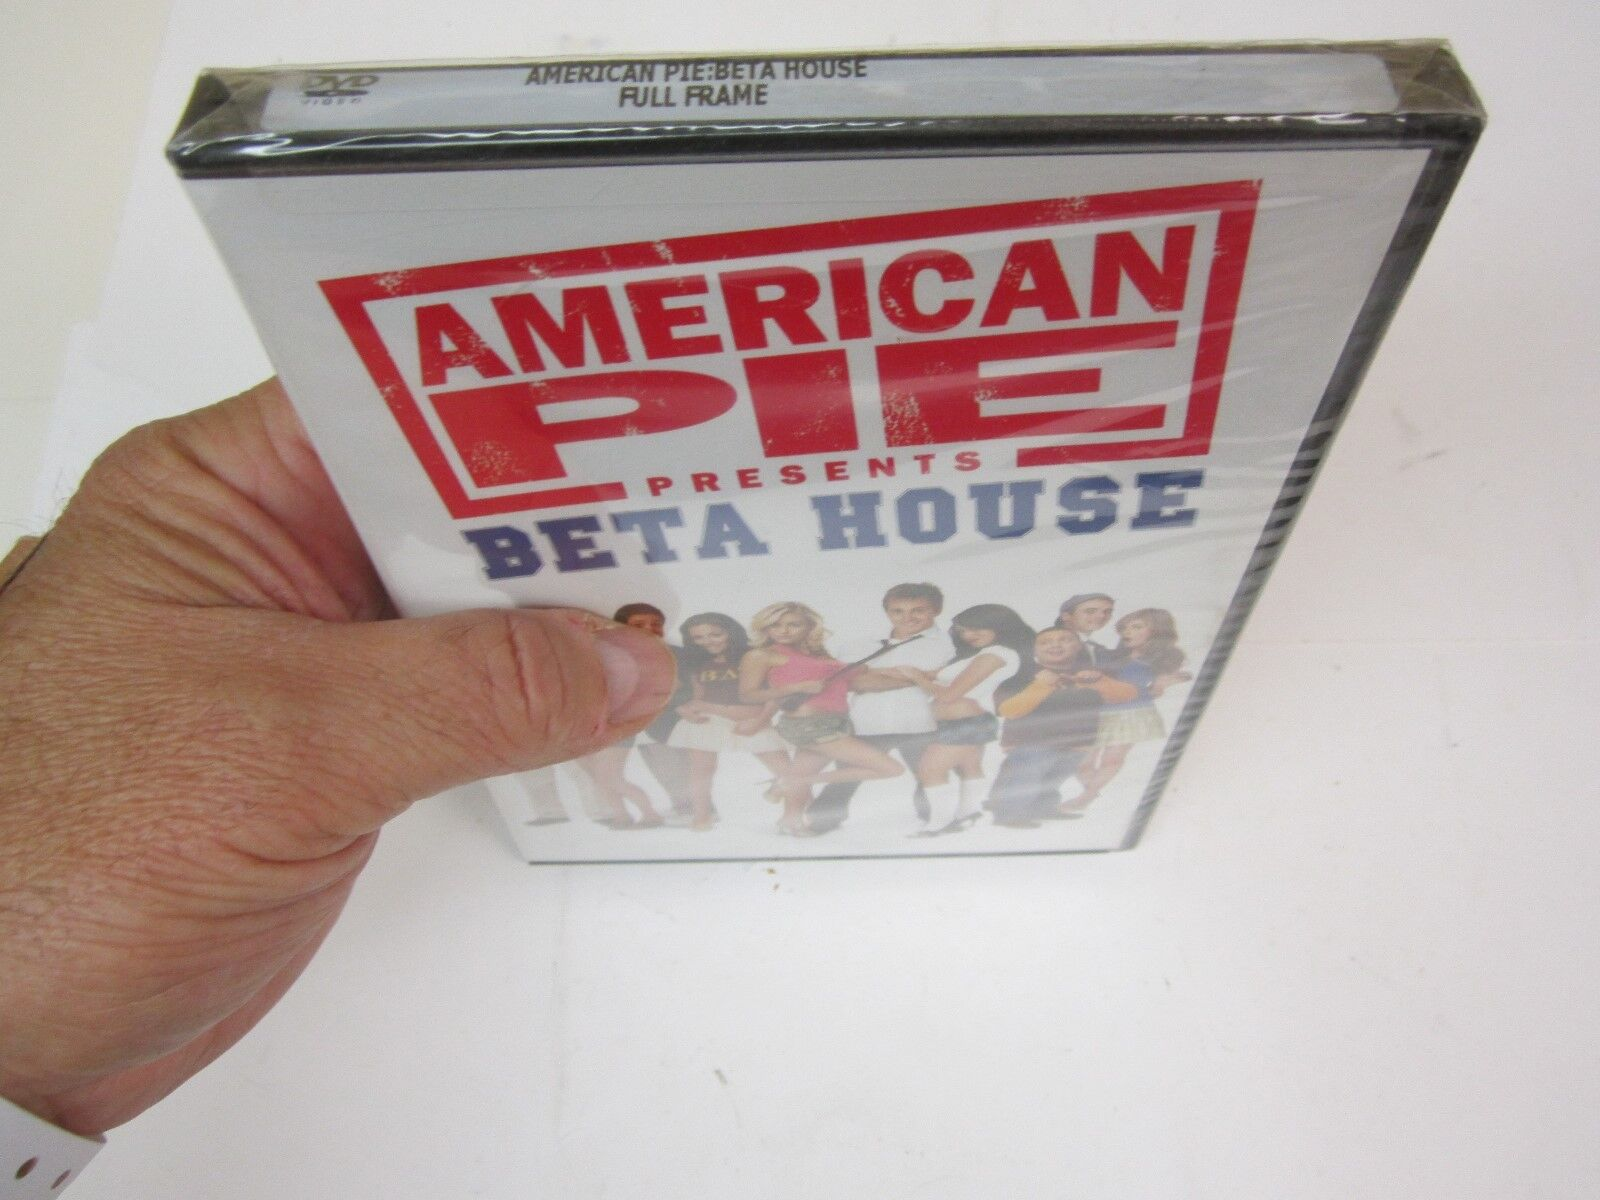 American Pie 6 Presents Beta House 2007 american pie presents: beta house (dvd, 2007, full frame rated)